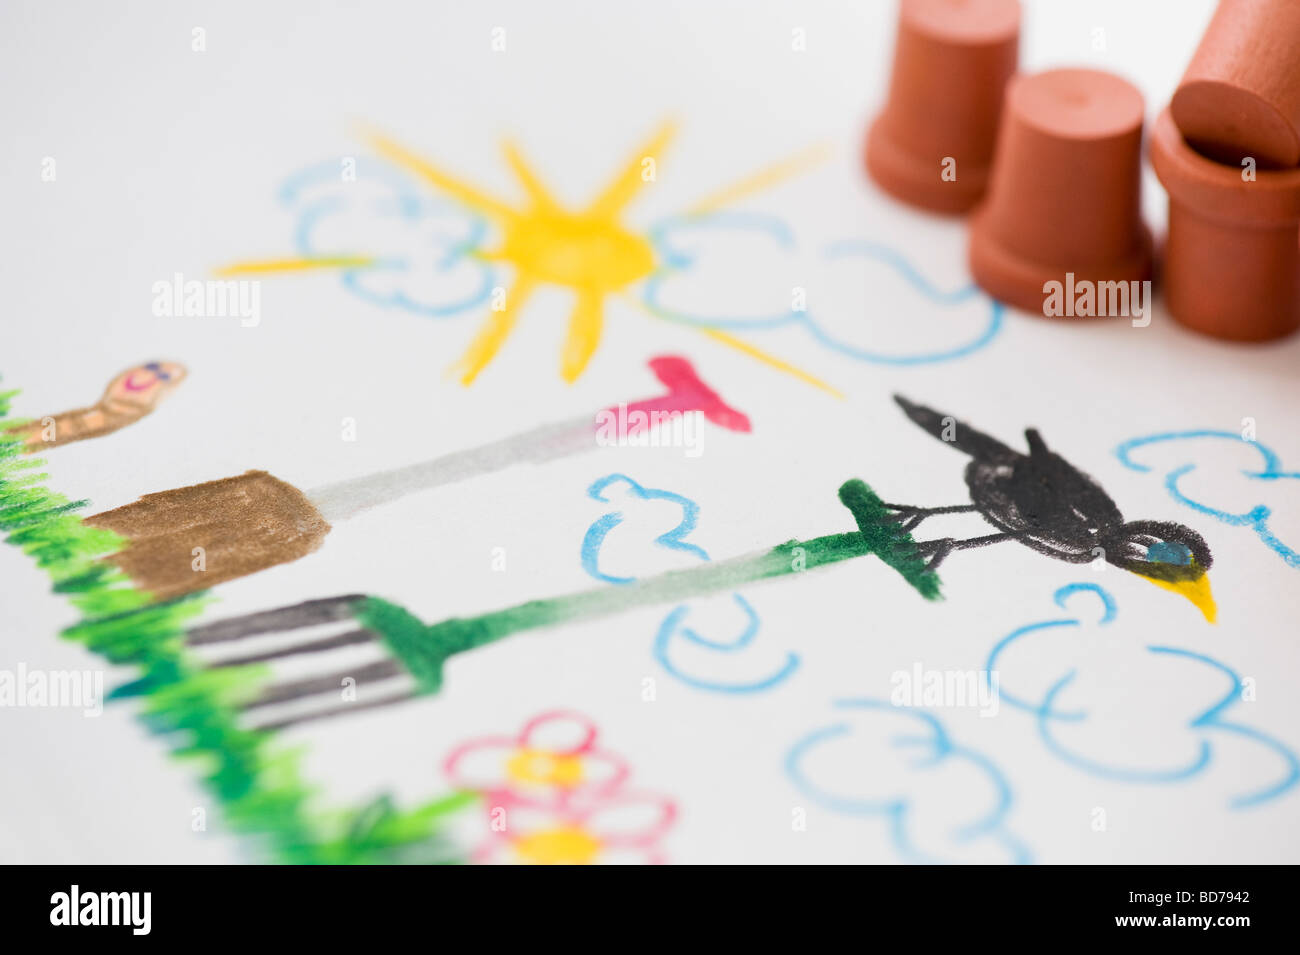 Garden scene with garden tools and flower pots , child's drawing in coloured pencils - Stock Image